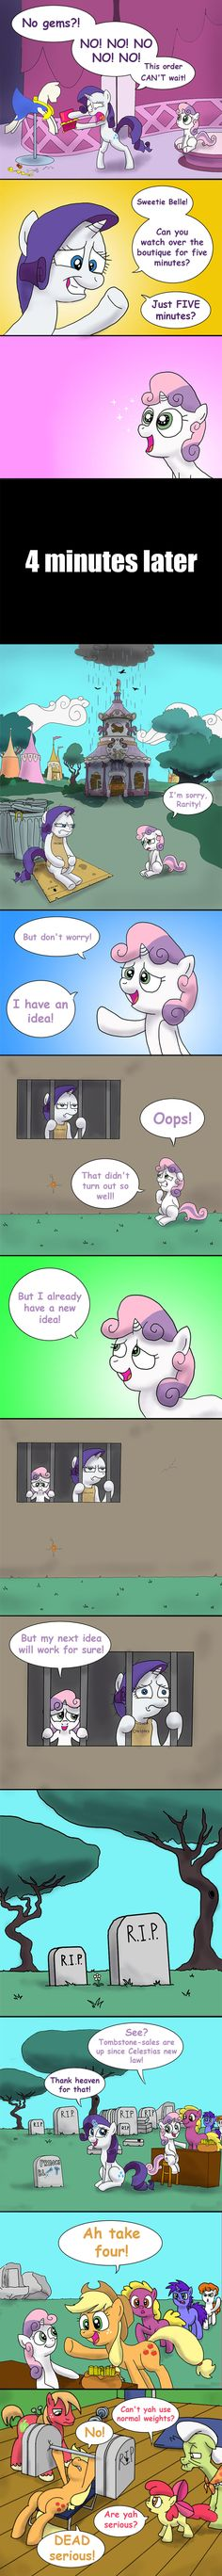 Seems like Rarity cannot understand Spike`s true feelings. Or maybe she understands them too well? Copyright of My little Pony: Friendship is Magic belongs to Hasbro and the Hub Network. My Little Pony Comic, My Little Pony Pictures, Mlp My Little Pony, My Little Pony Friendship, Mlp Comics, Funny Comics, Mlp Memes, Disney Memes, Sweetie Belle